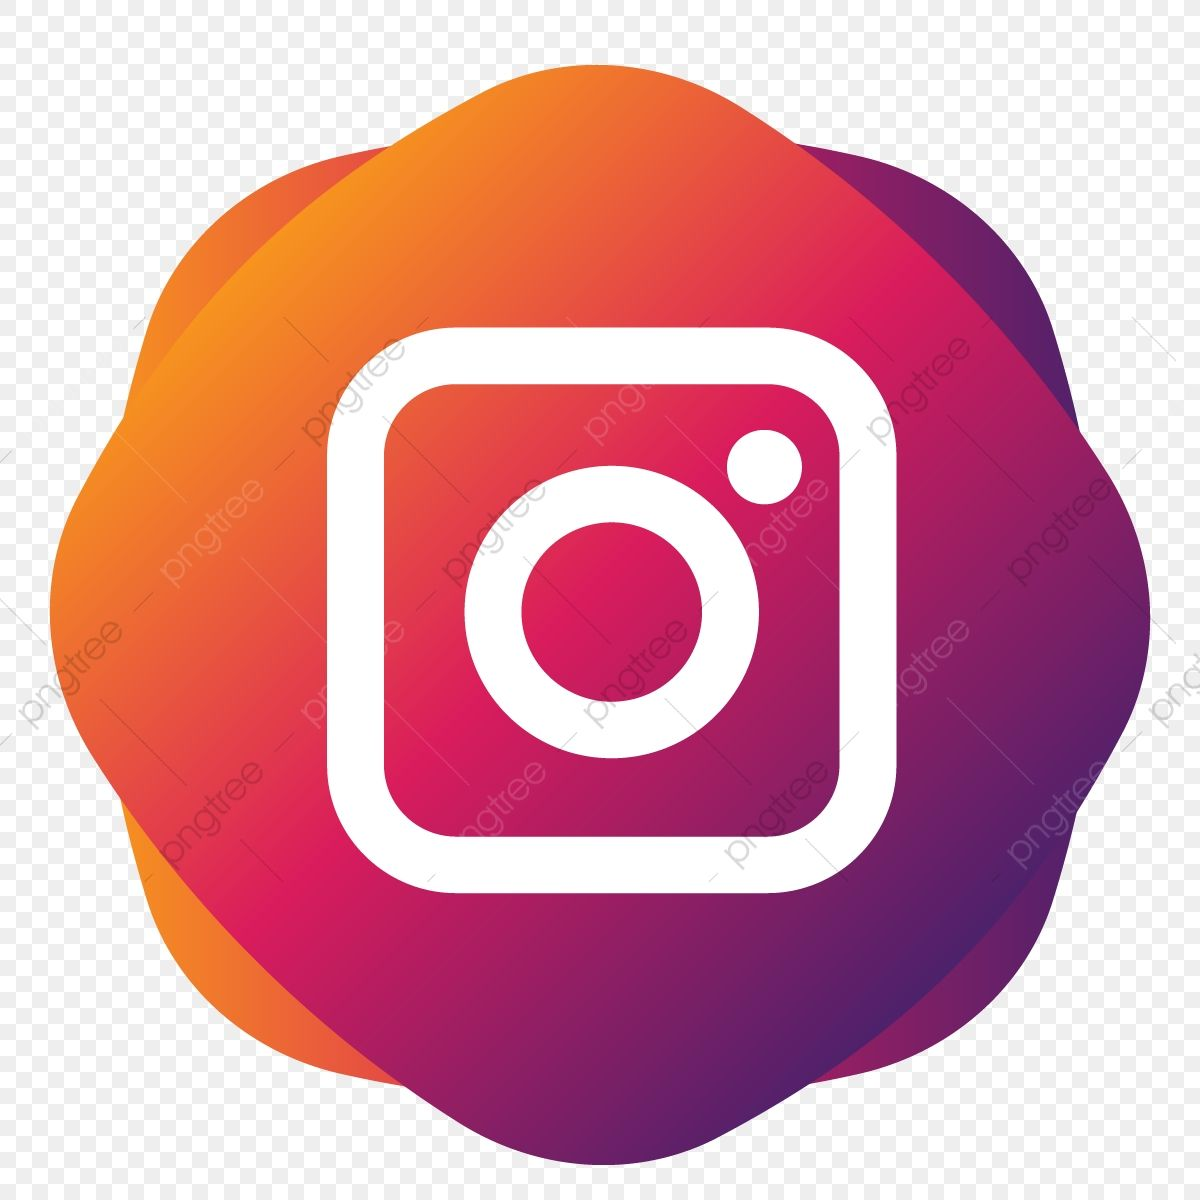 Instagram Logo Instagram Icon Instagram Icons Logo Icons Logo Clipart Png And Vector With Transparent Background For Free Download Instagram Logo Instagram Icons Sports Design Inspiration